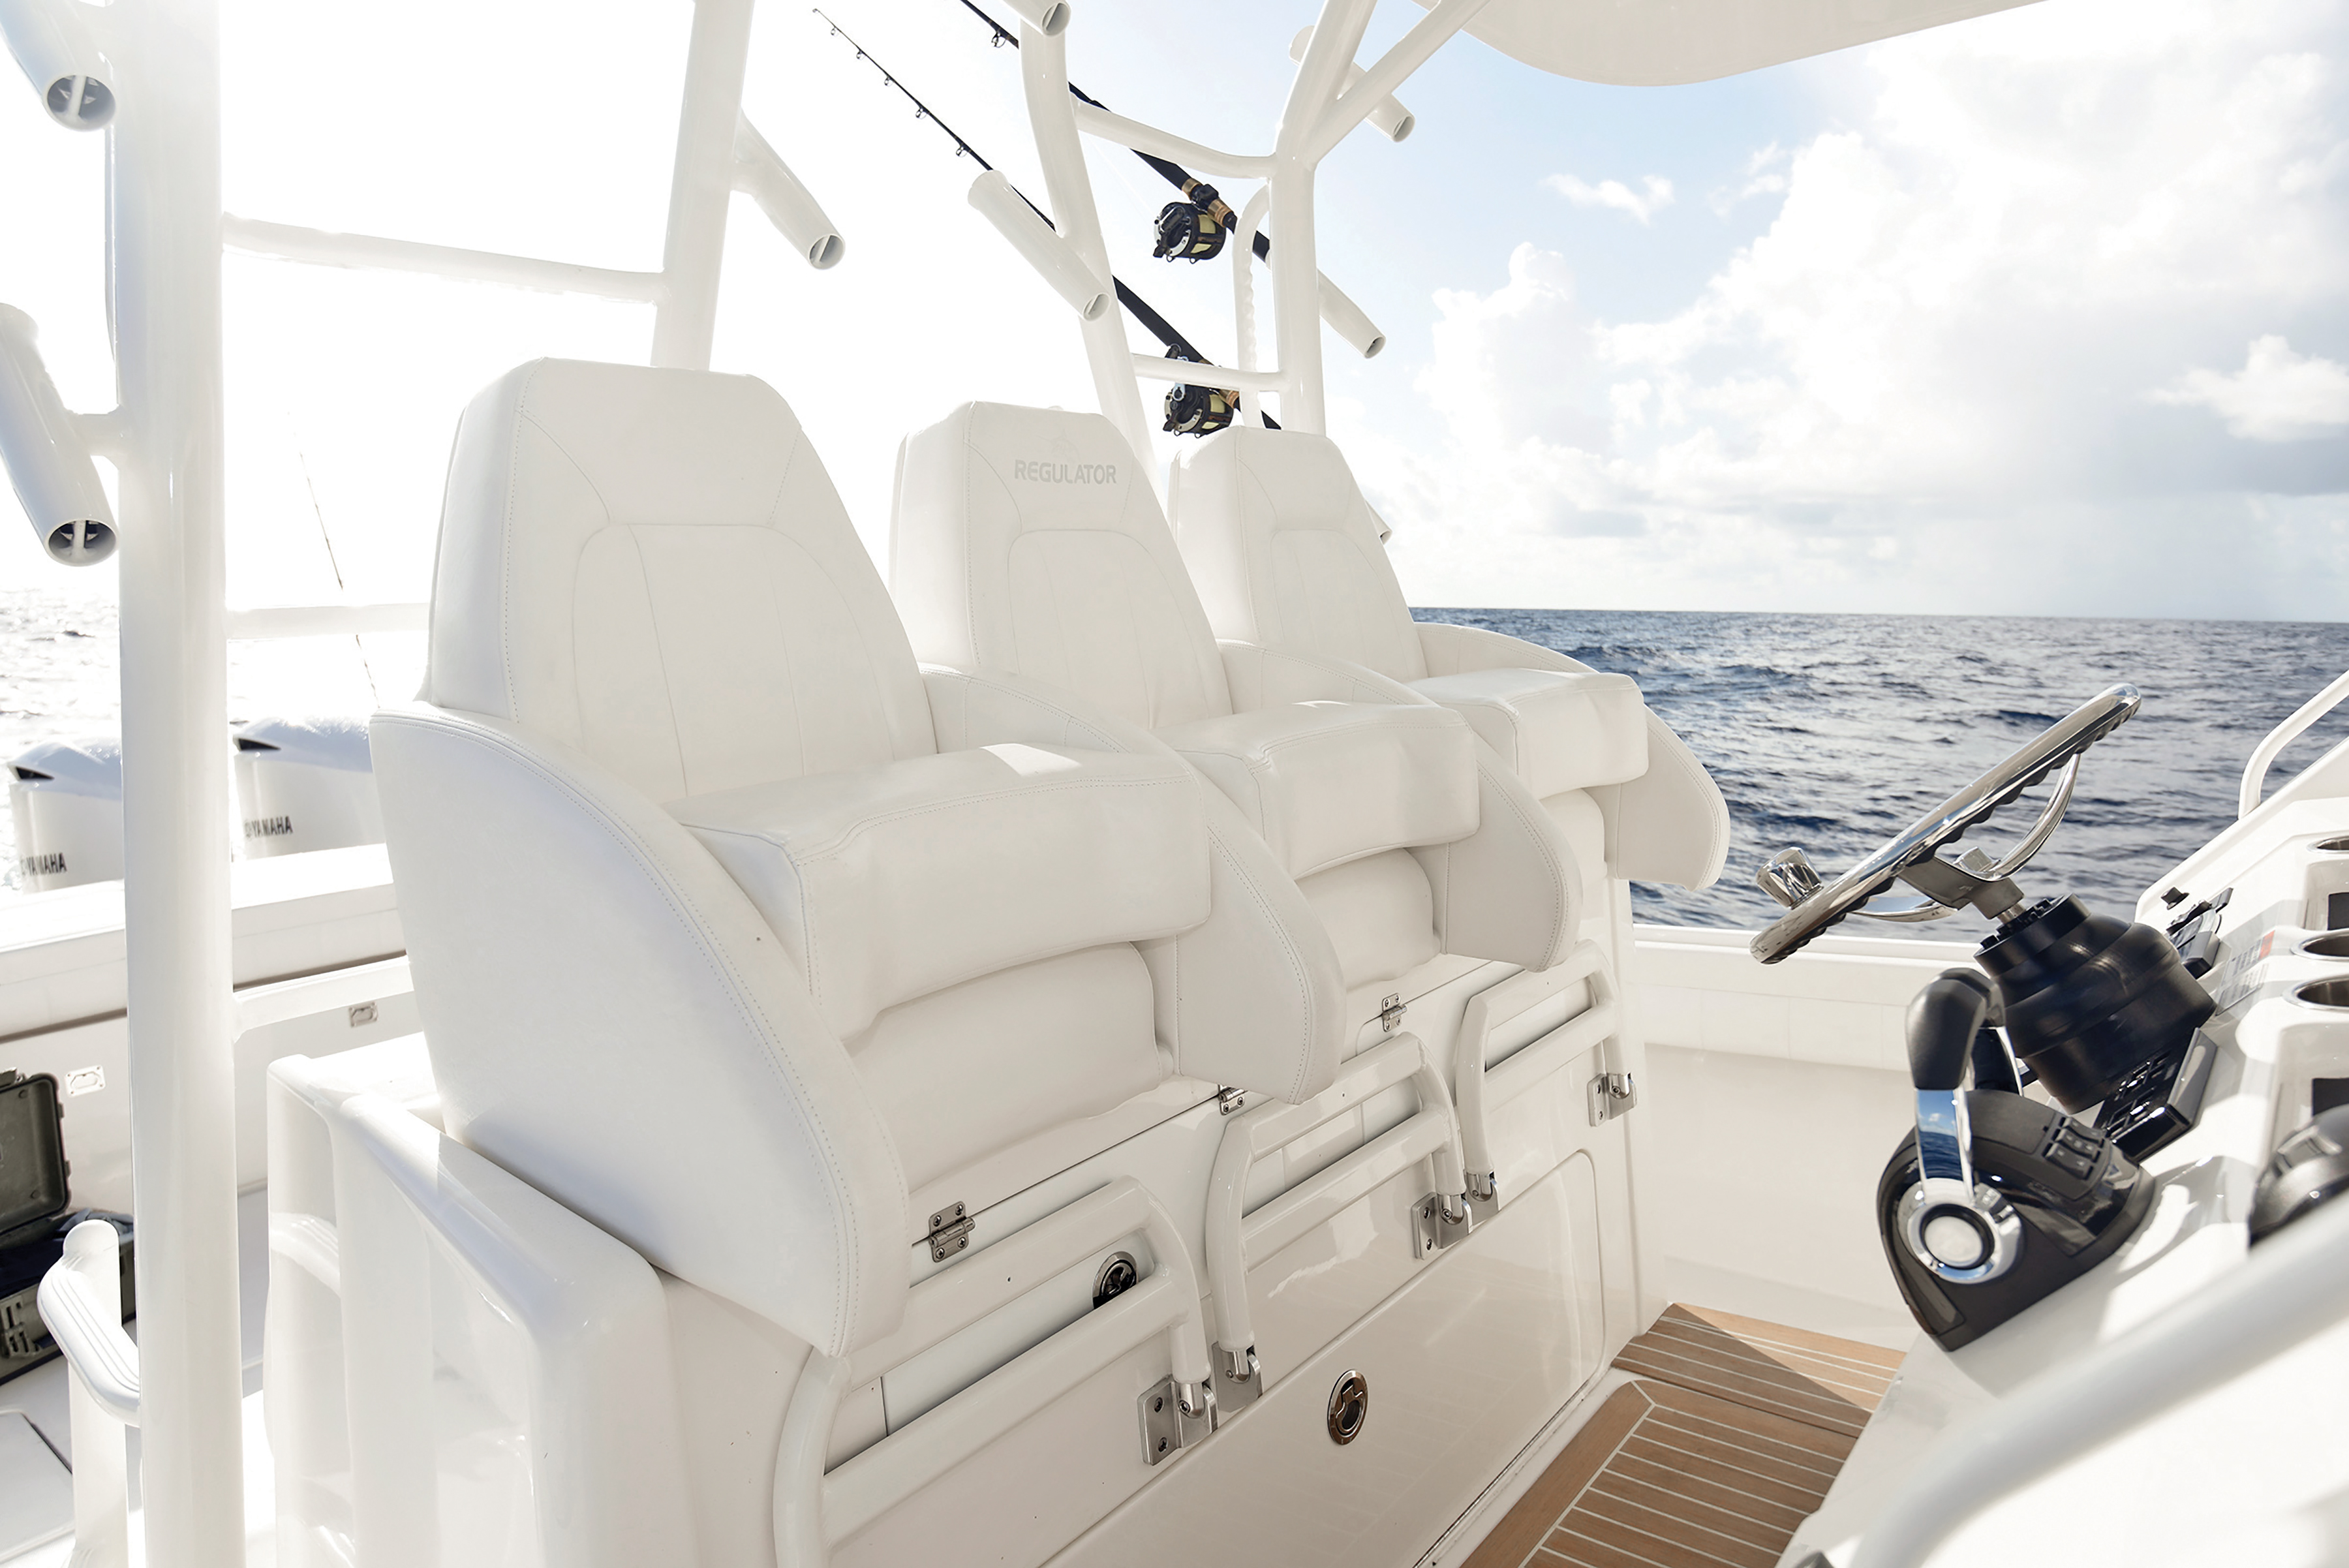 Groovy New Helm Chairs On Fishing Boats Sport Fishing Magazine Theyellowbook Wood Chair Design Ideas Theyellowbookinfo